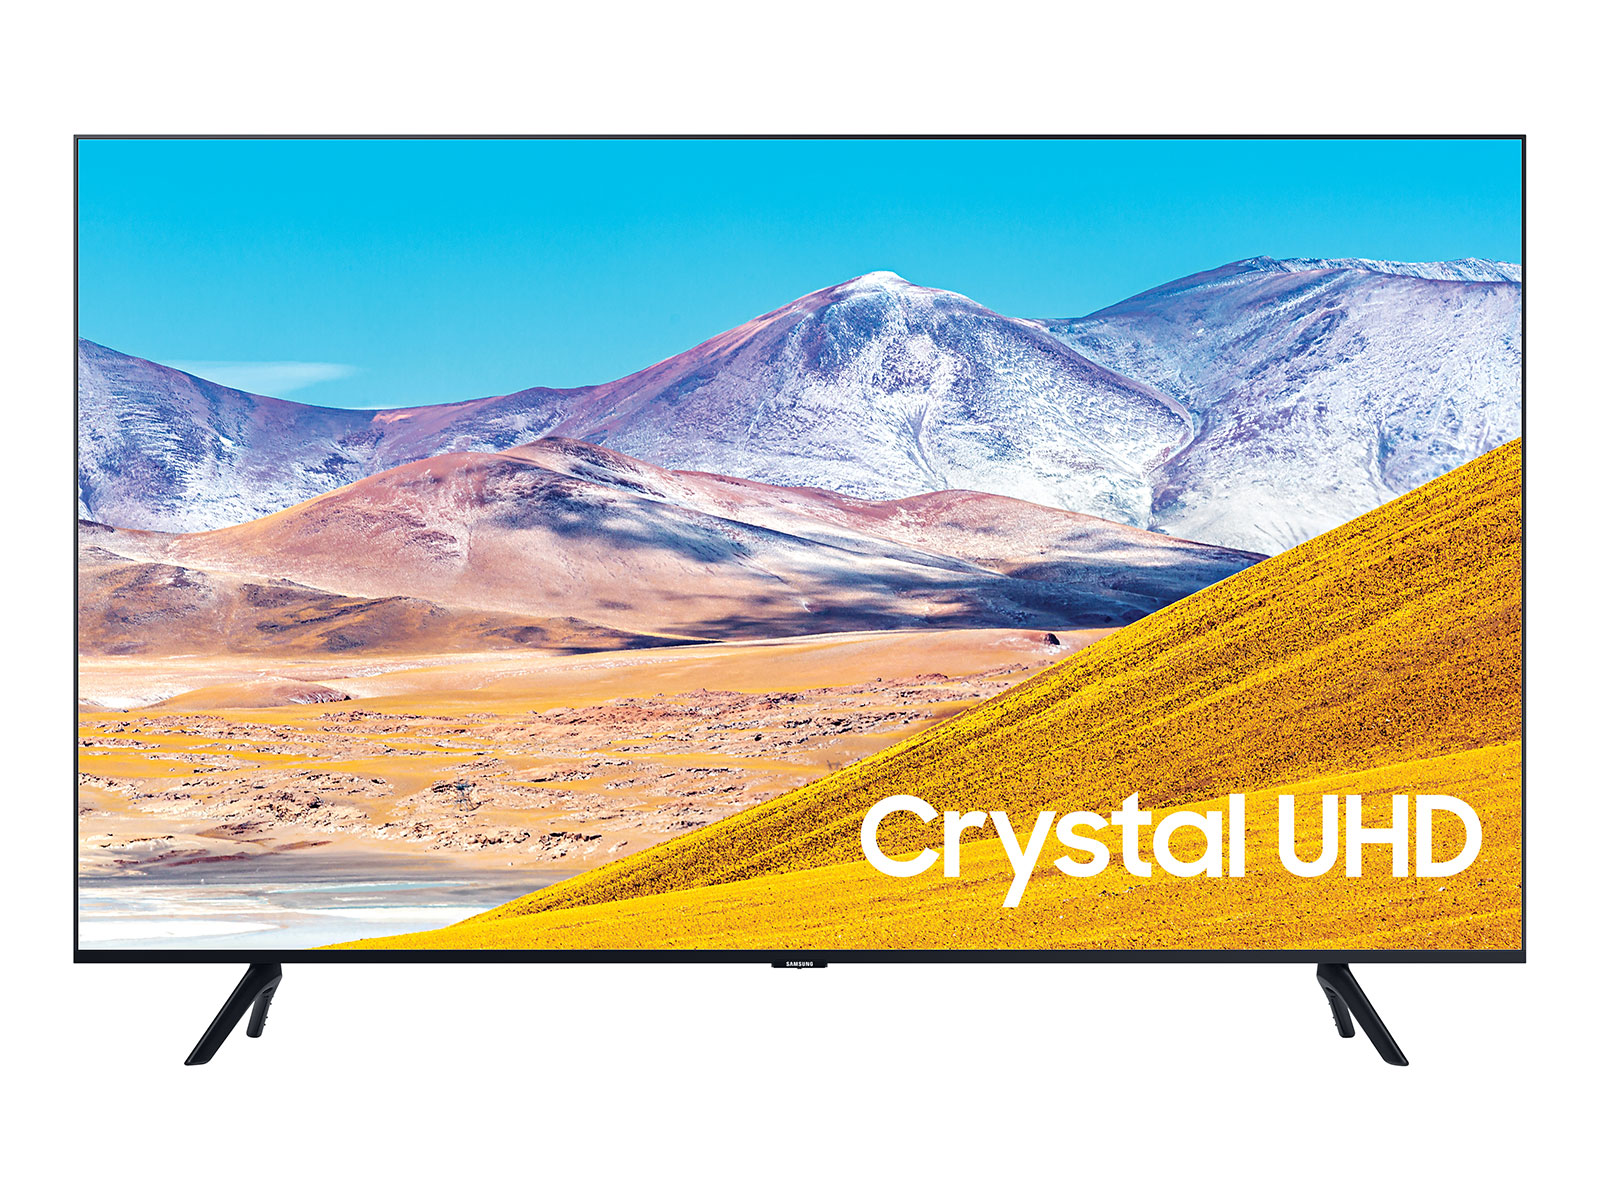 "Samsung TV 43TU8000 in Kenya 43"" Very Crystal UHD 4K Smart TV"